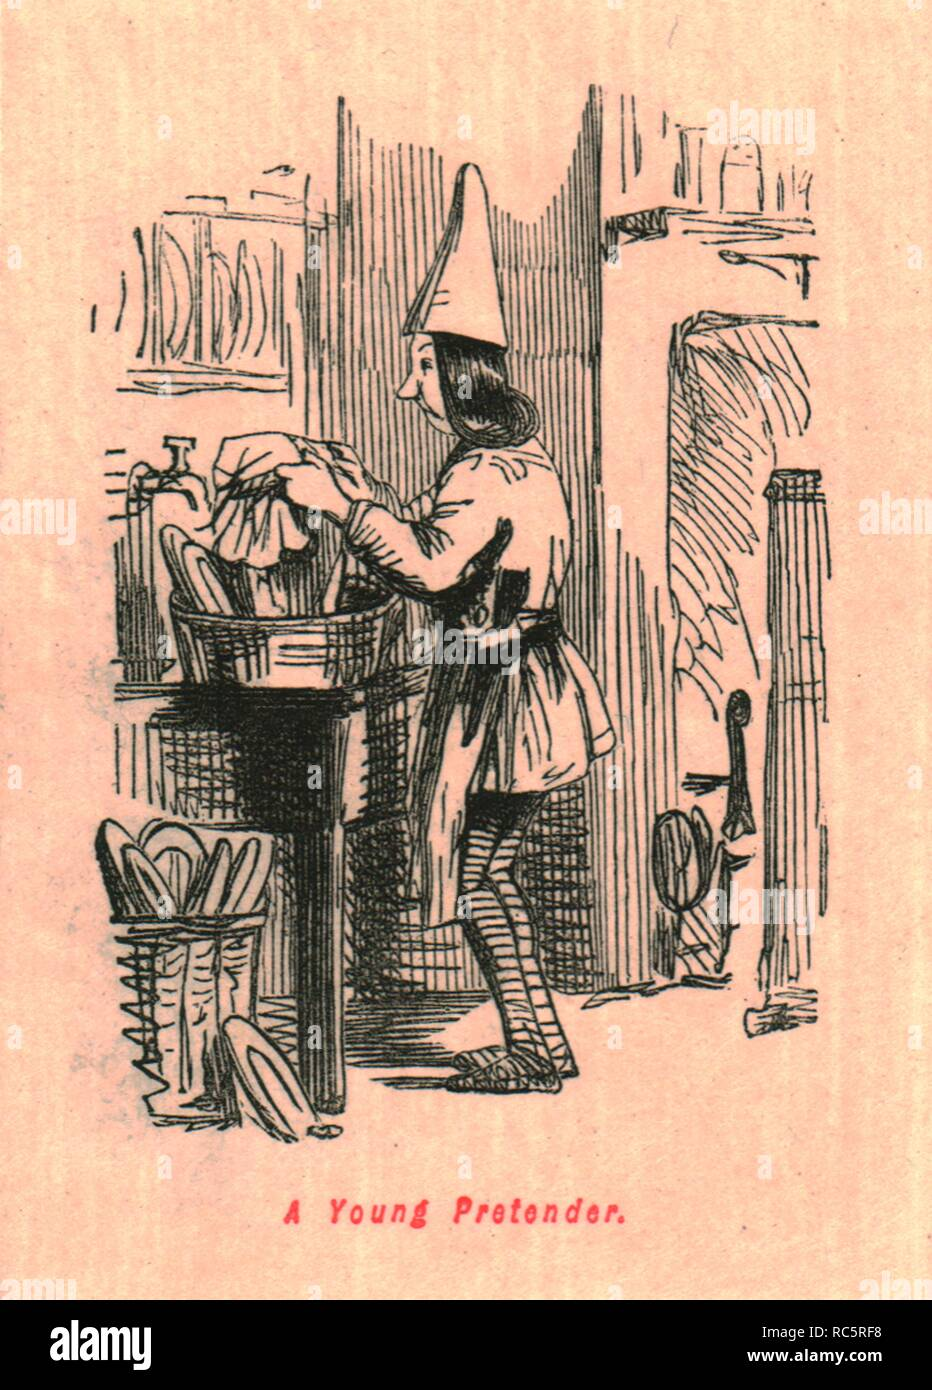 "'A Young Pretender', 1897. Youth in a pointed hat washing up, possibly meant to represent Perkin Warbeck. From ""The Comic History of England"" by Gilbert Abbott A Beckett, with satirical illustrations by John Leech. [Bradbury, Agnew & Co, London, 1897] - Stock Image"